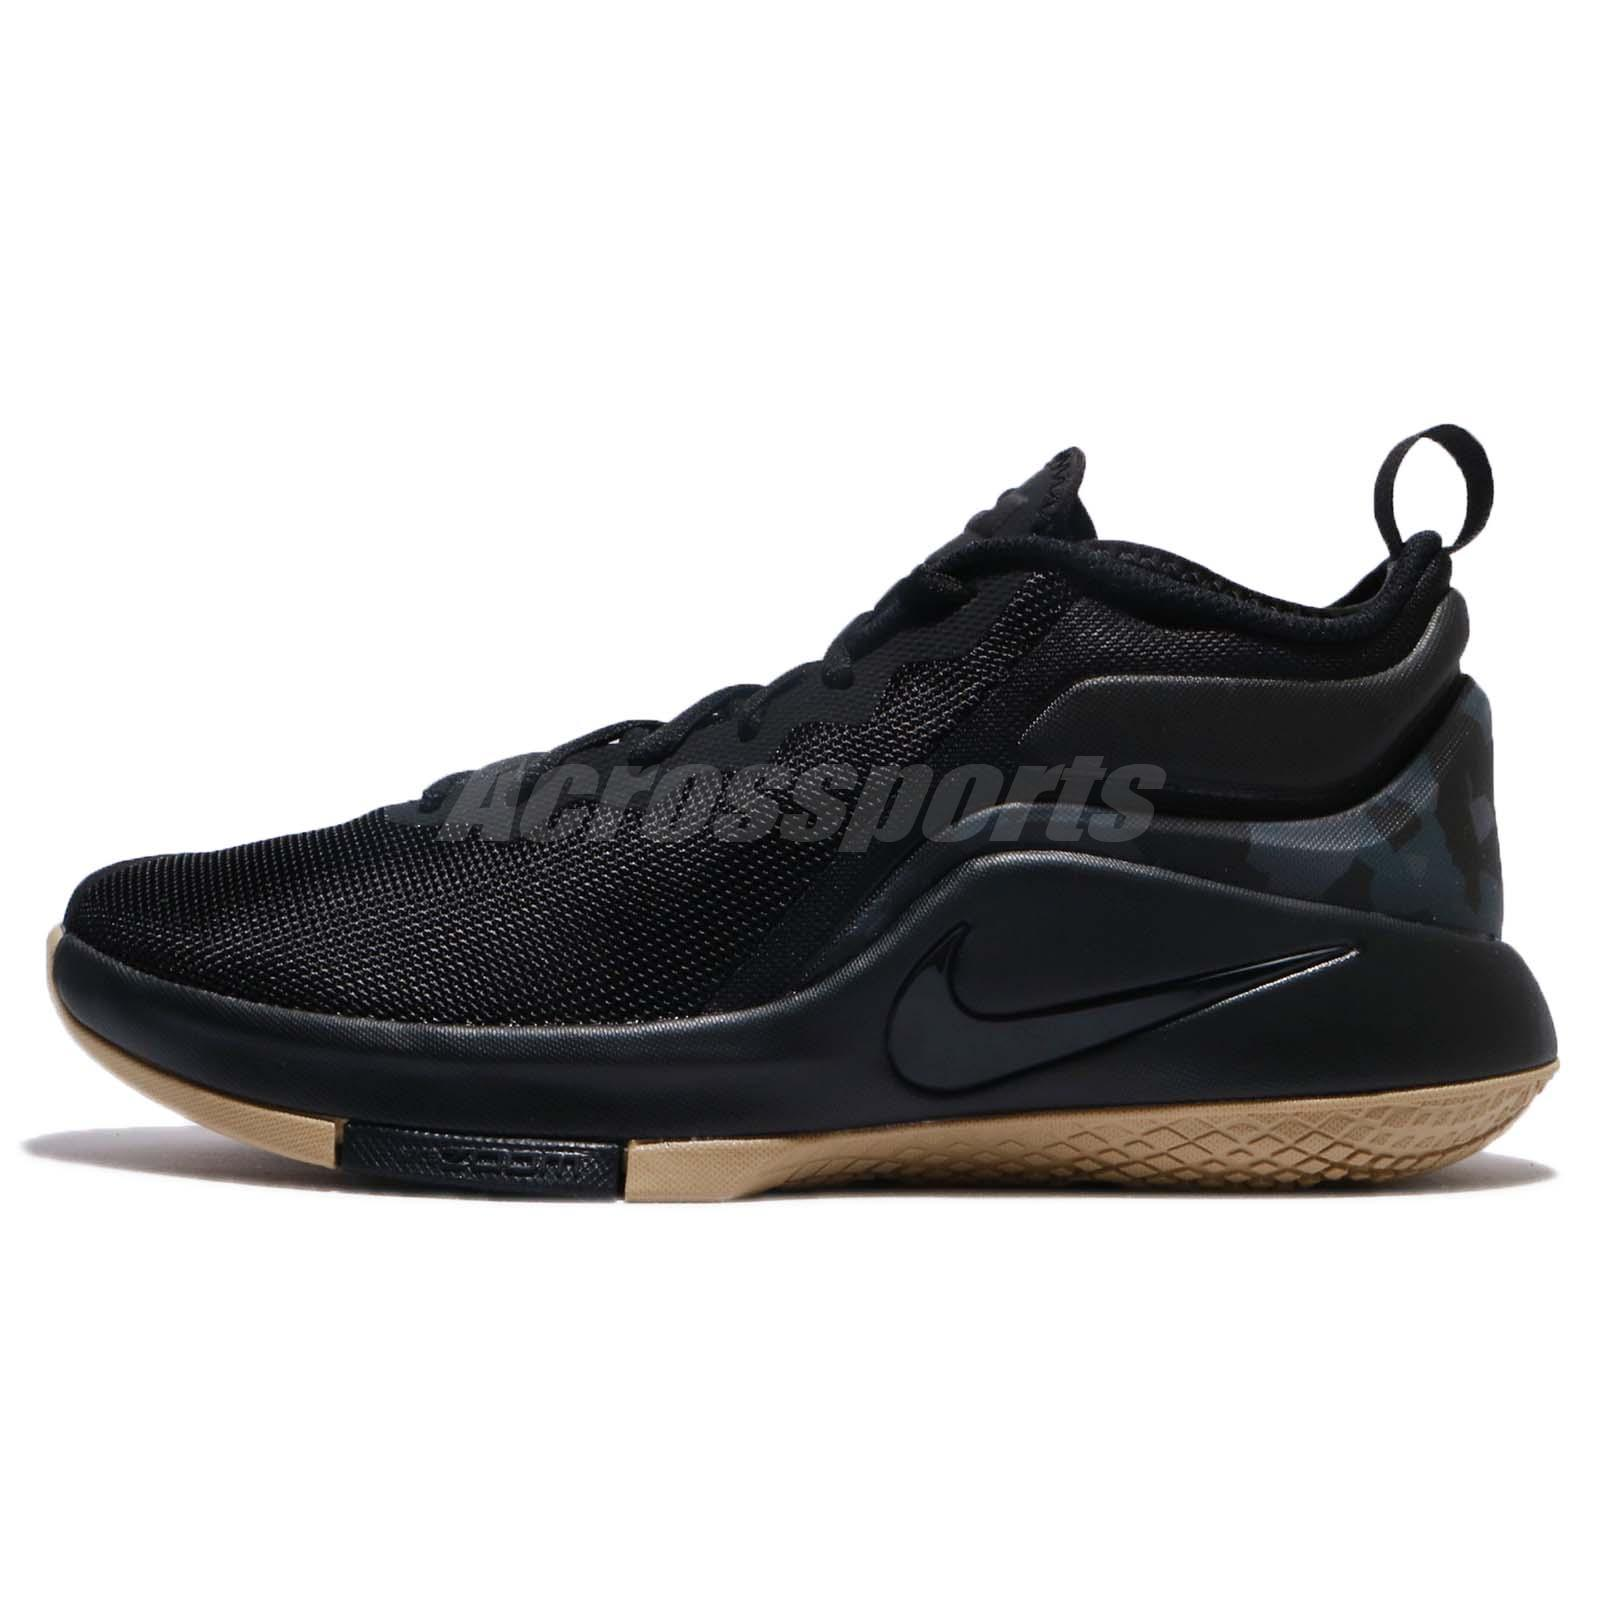 89f871a0a99 Nike Lebron Witness II EP 2 James Black Men Basketball Shoes Sneakers  AA3820-020